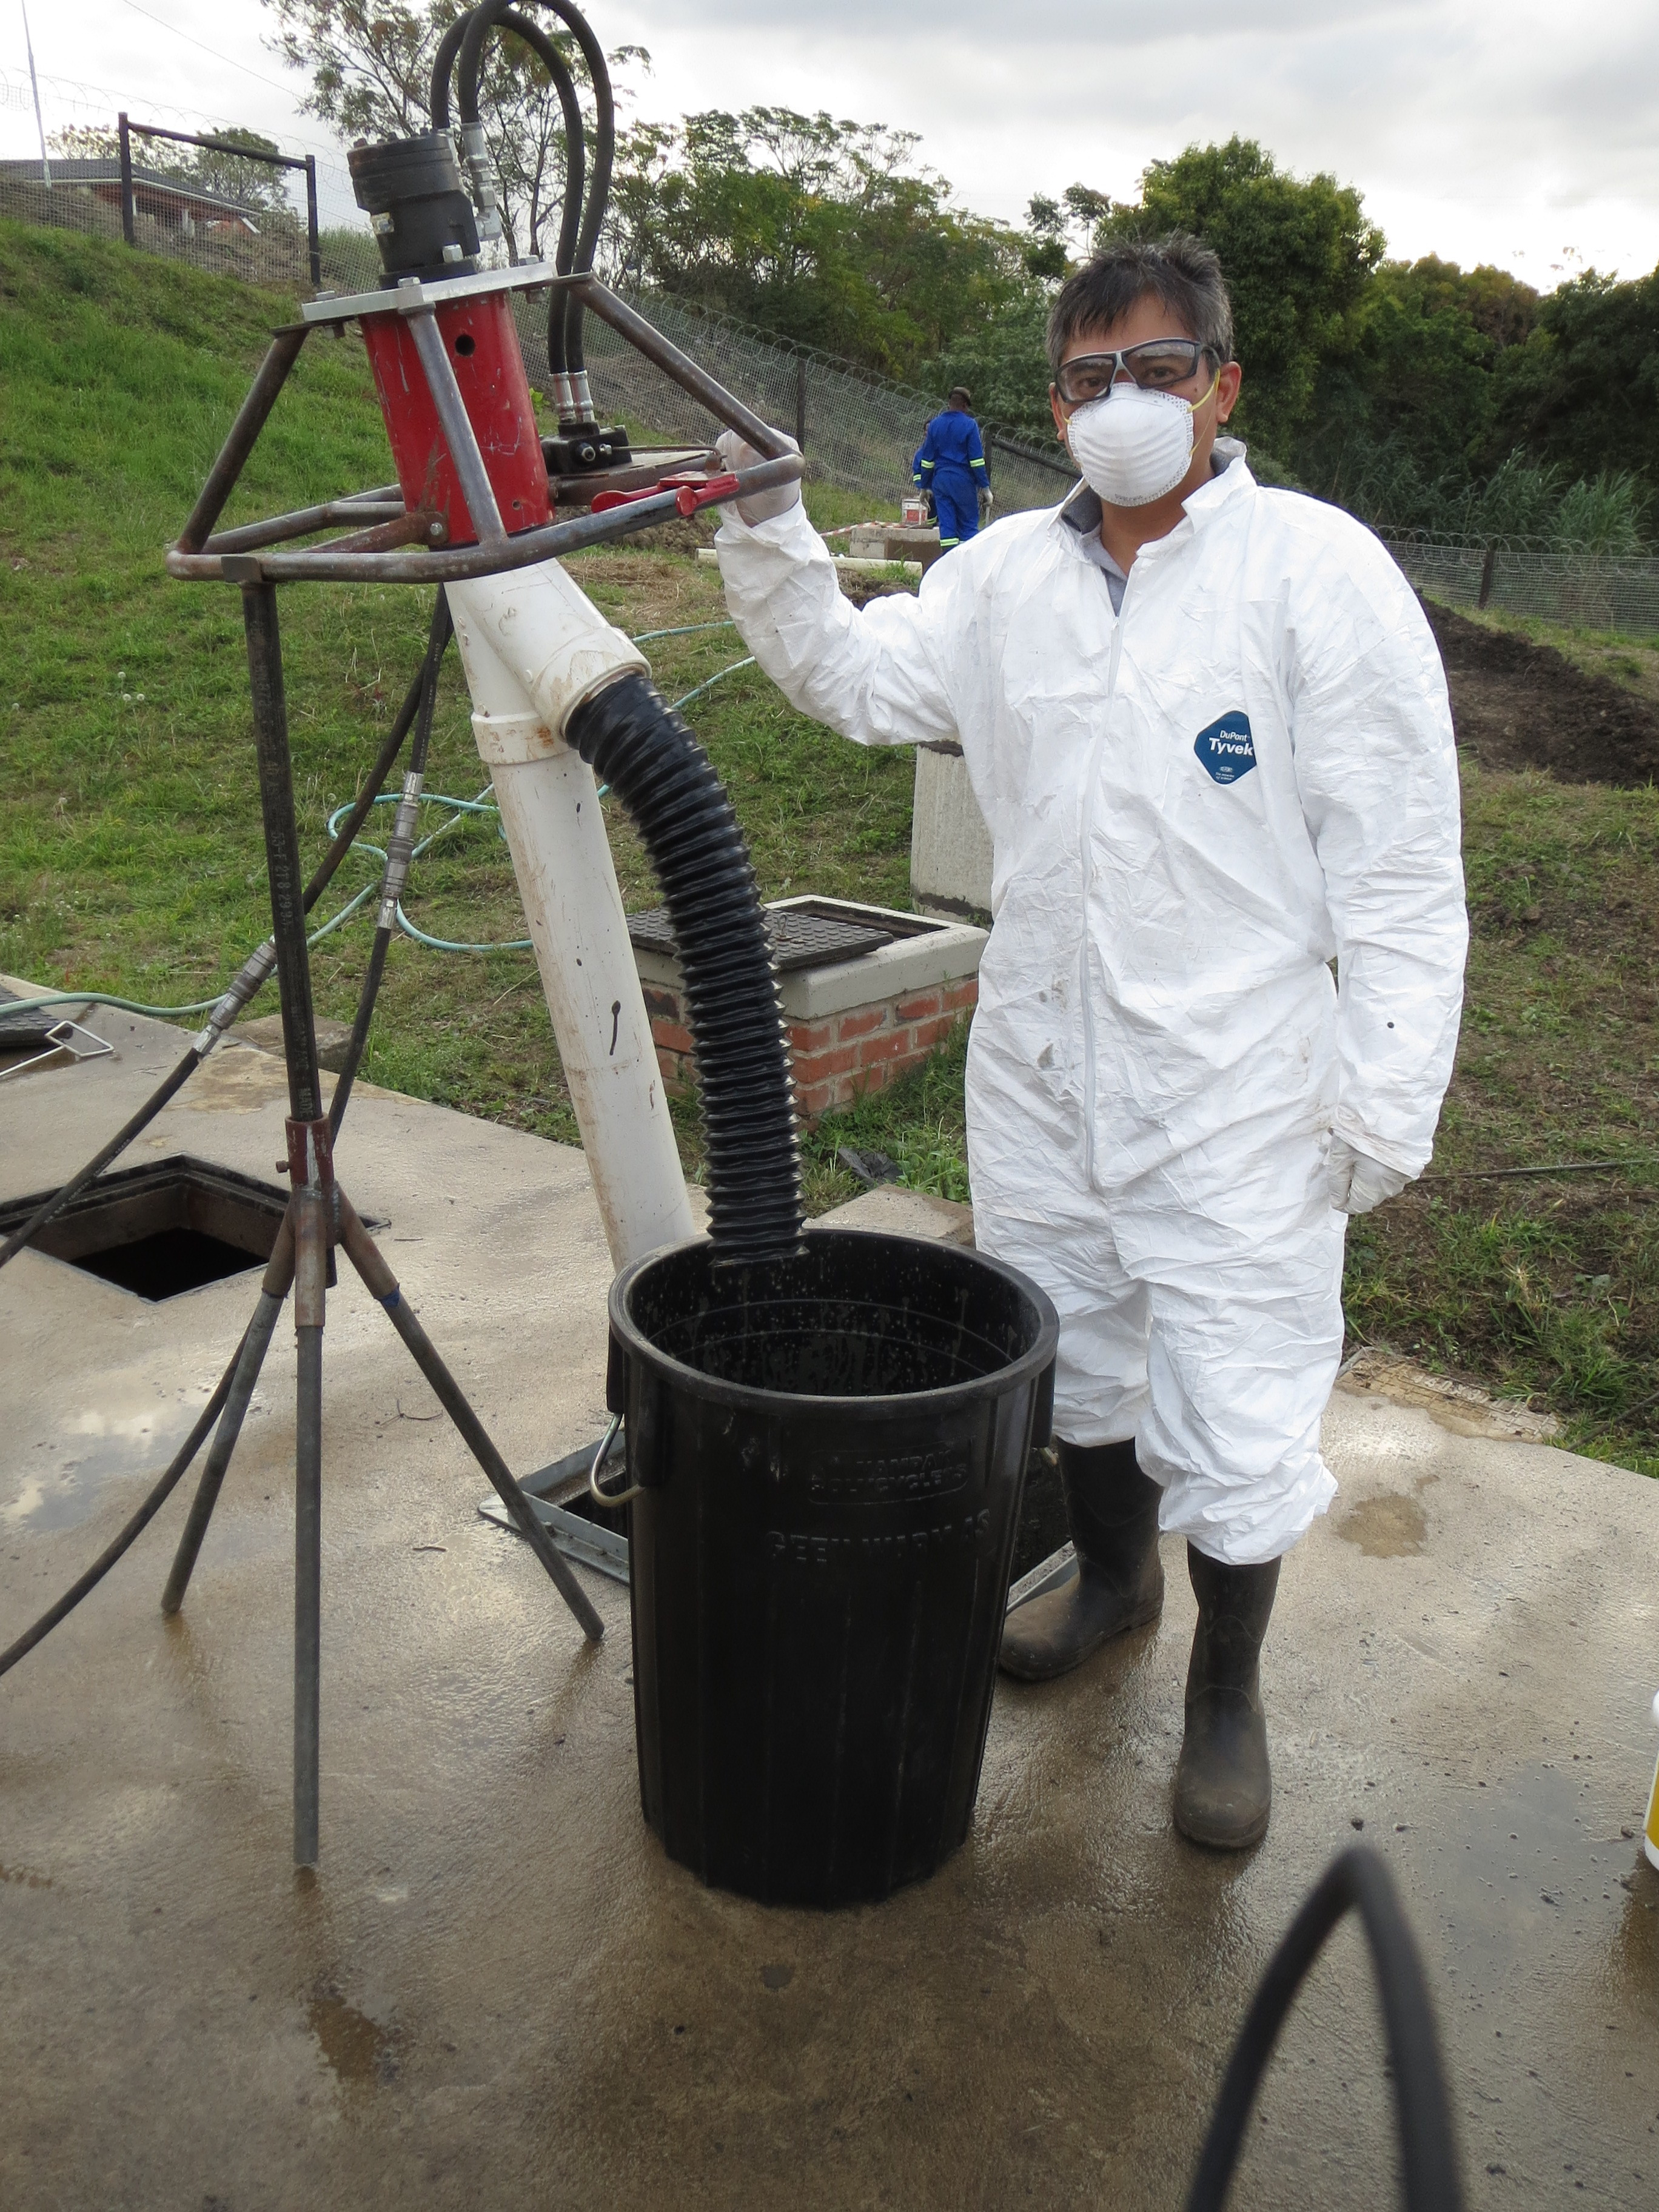 """With """"The Excrevator"""", the modified power auger designed at North Carolina State University, for emptying pit latrines.  The auger was being tested in Durban, South Africa. Photo: Bjorn Pietruschka"""